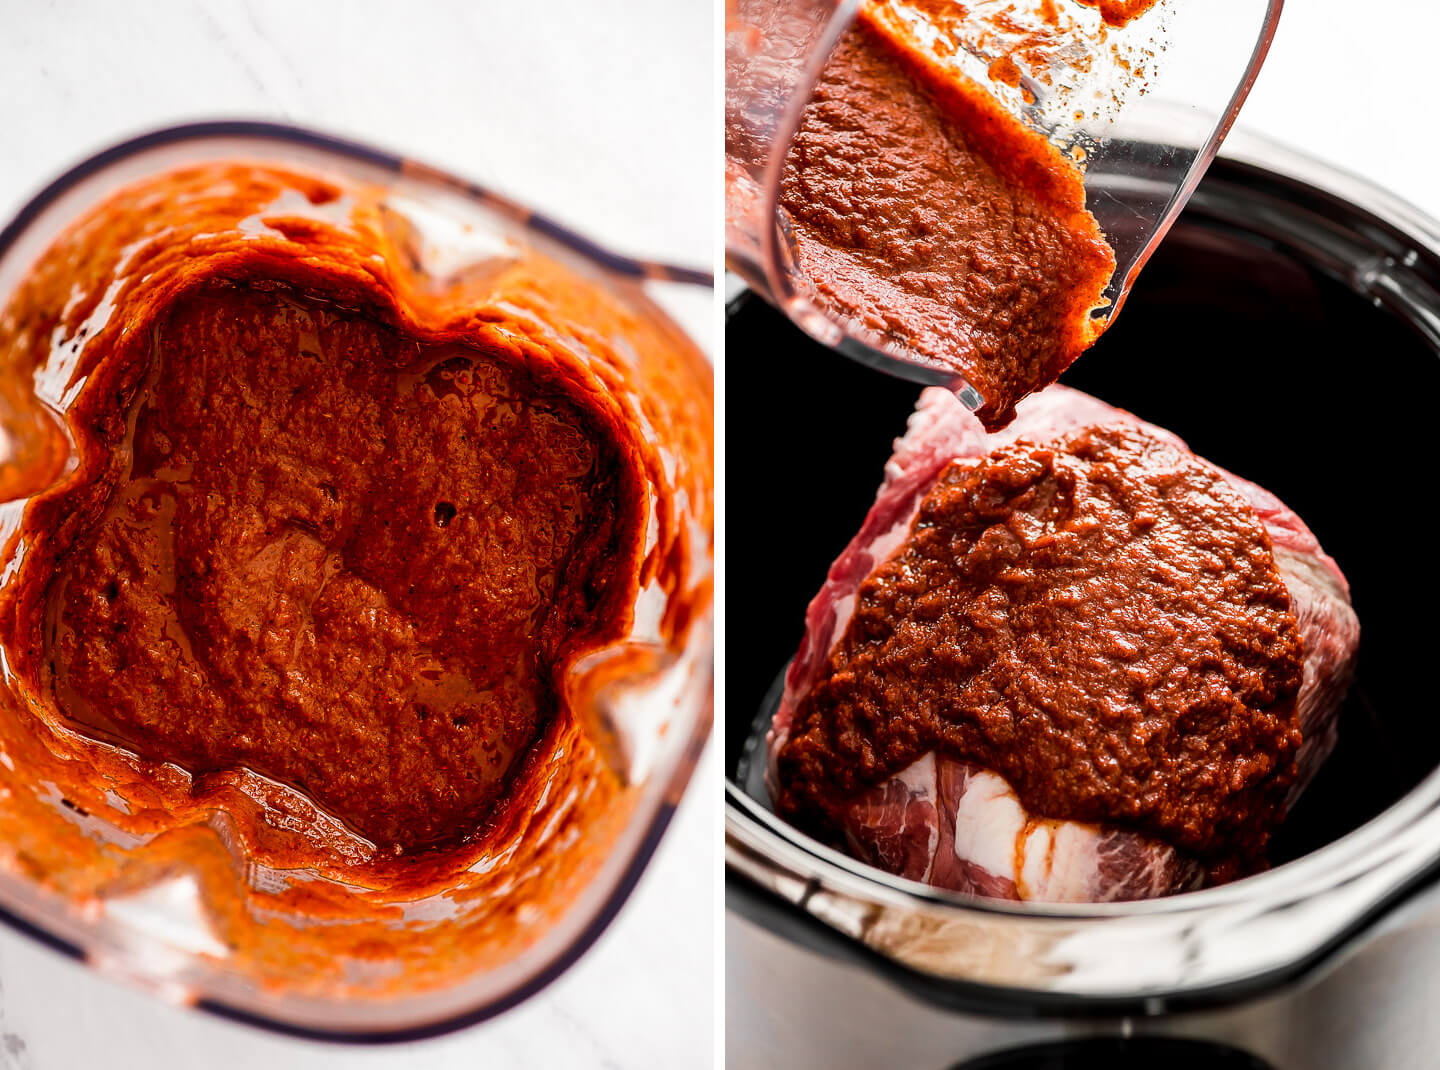 A thick red sauce in a blender poured over a pork roast in a slow cooker.